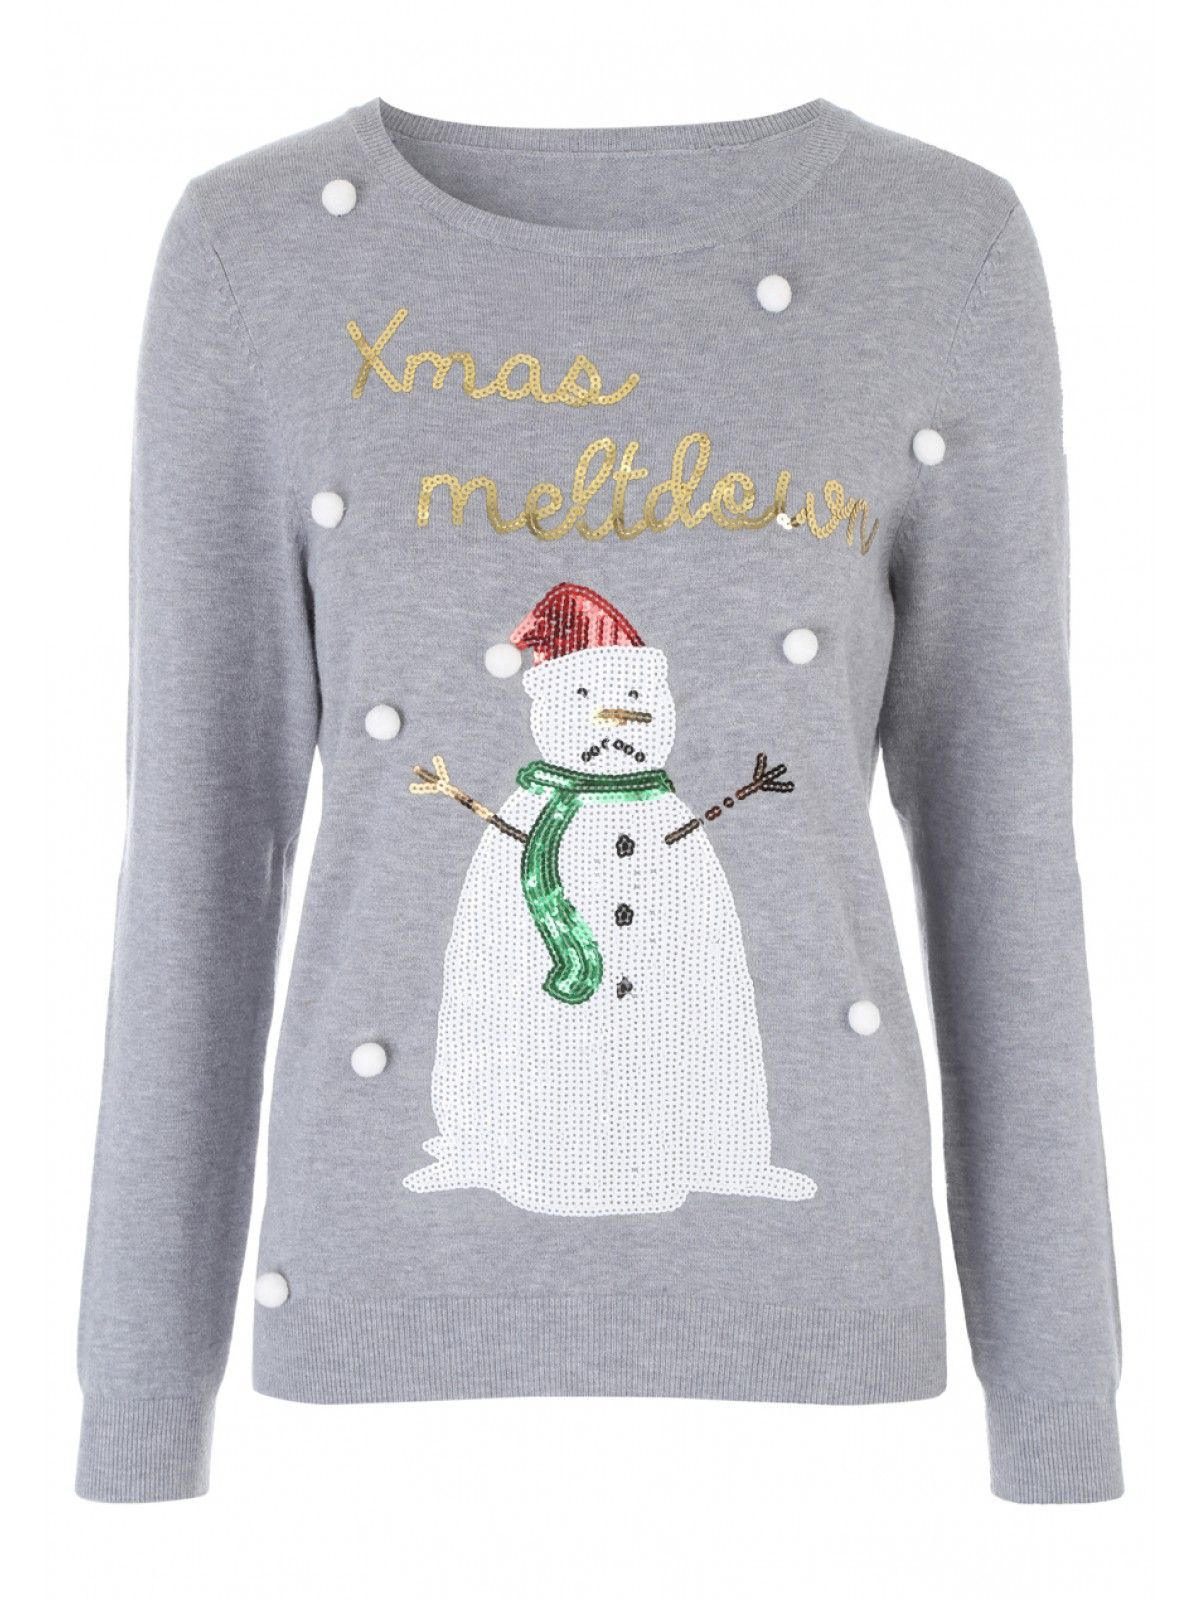 71688b52fd5 Don't have a meltdown on Xmas Jumper day! Sparkle your way through ...